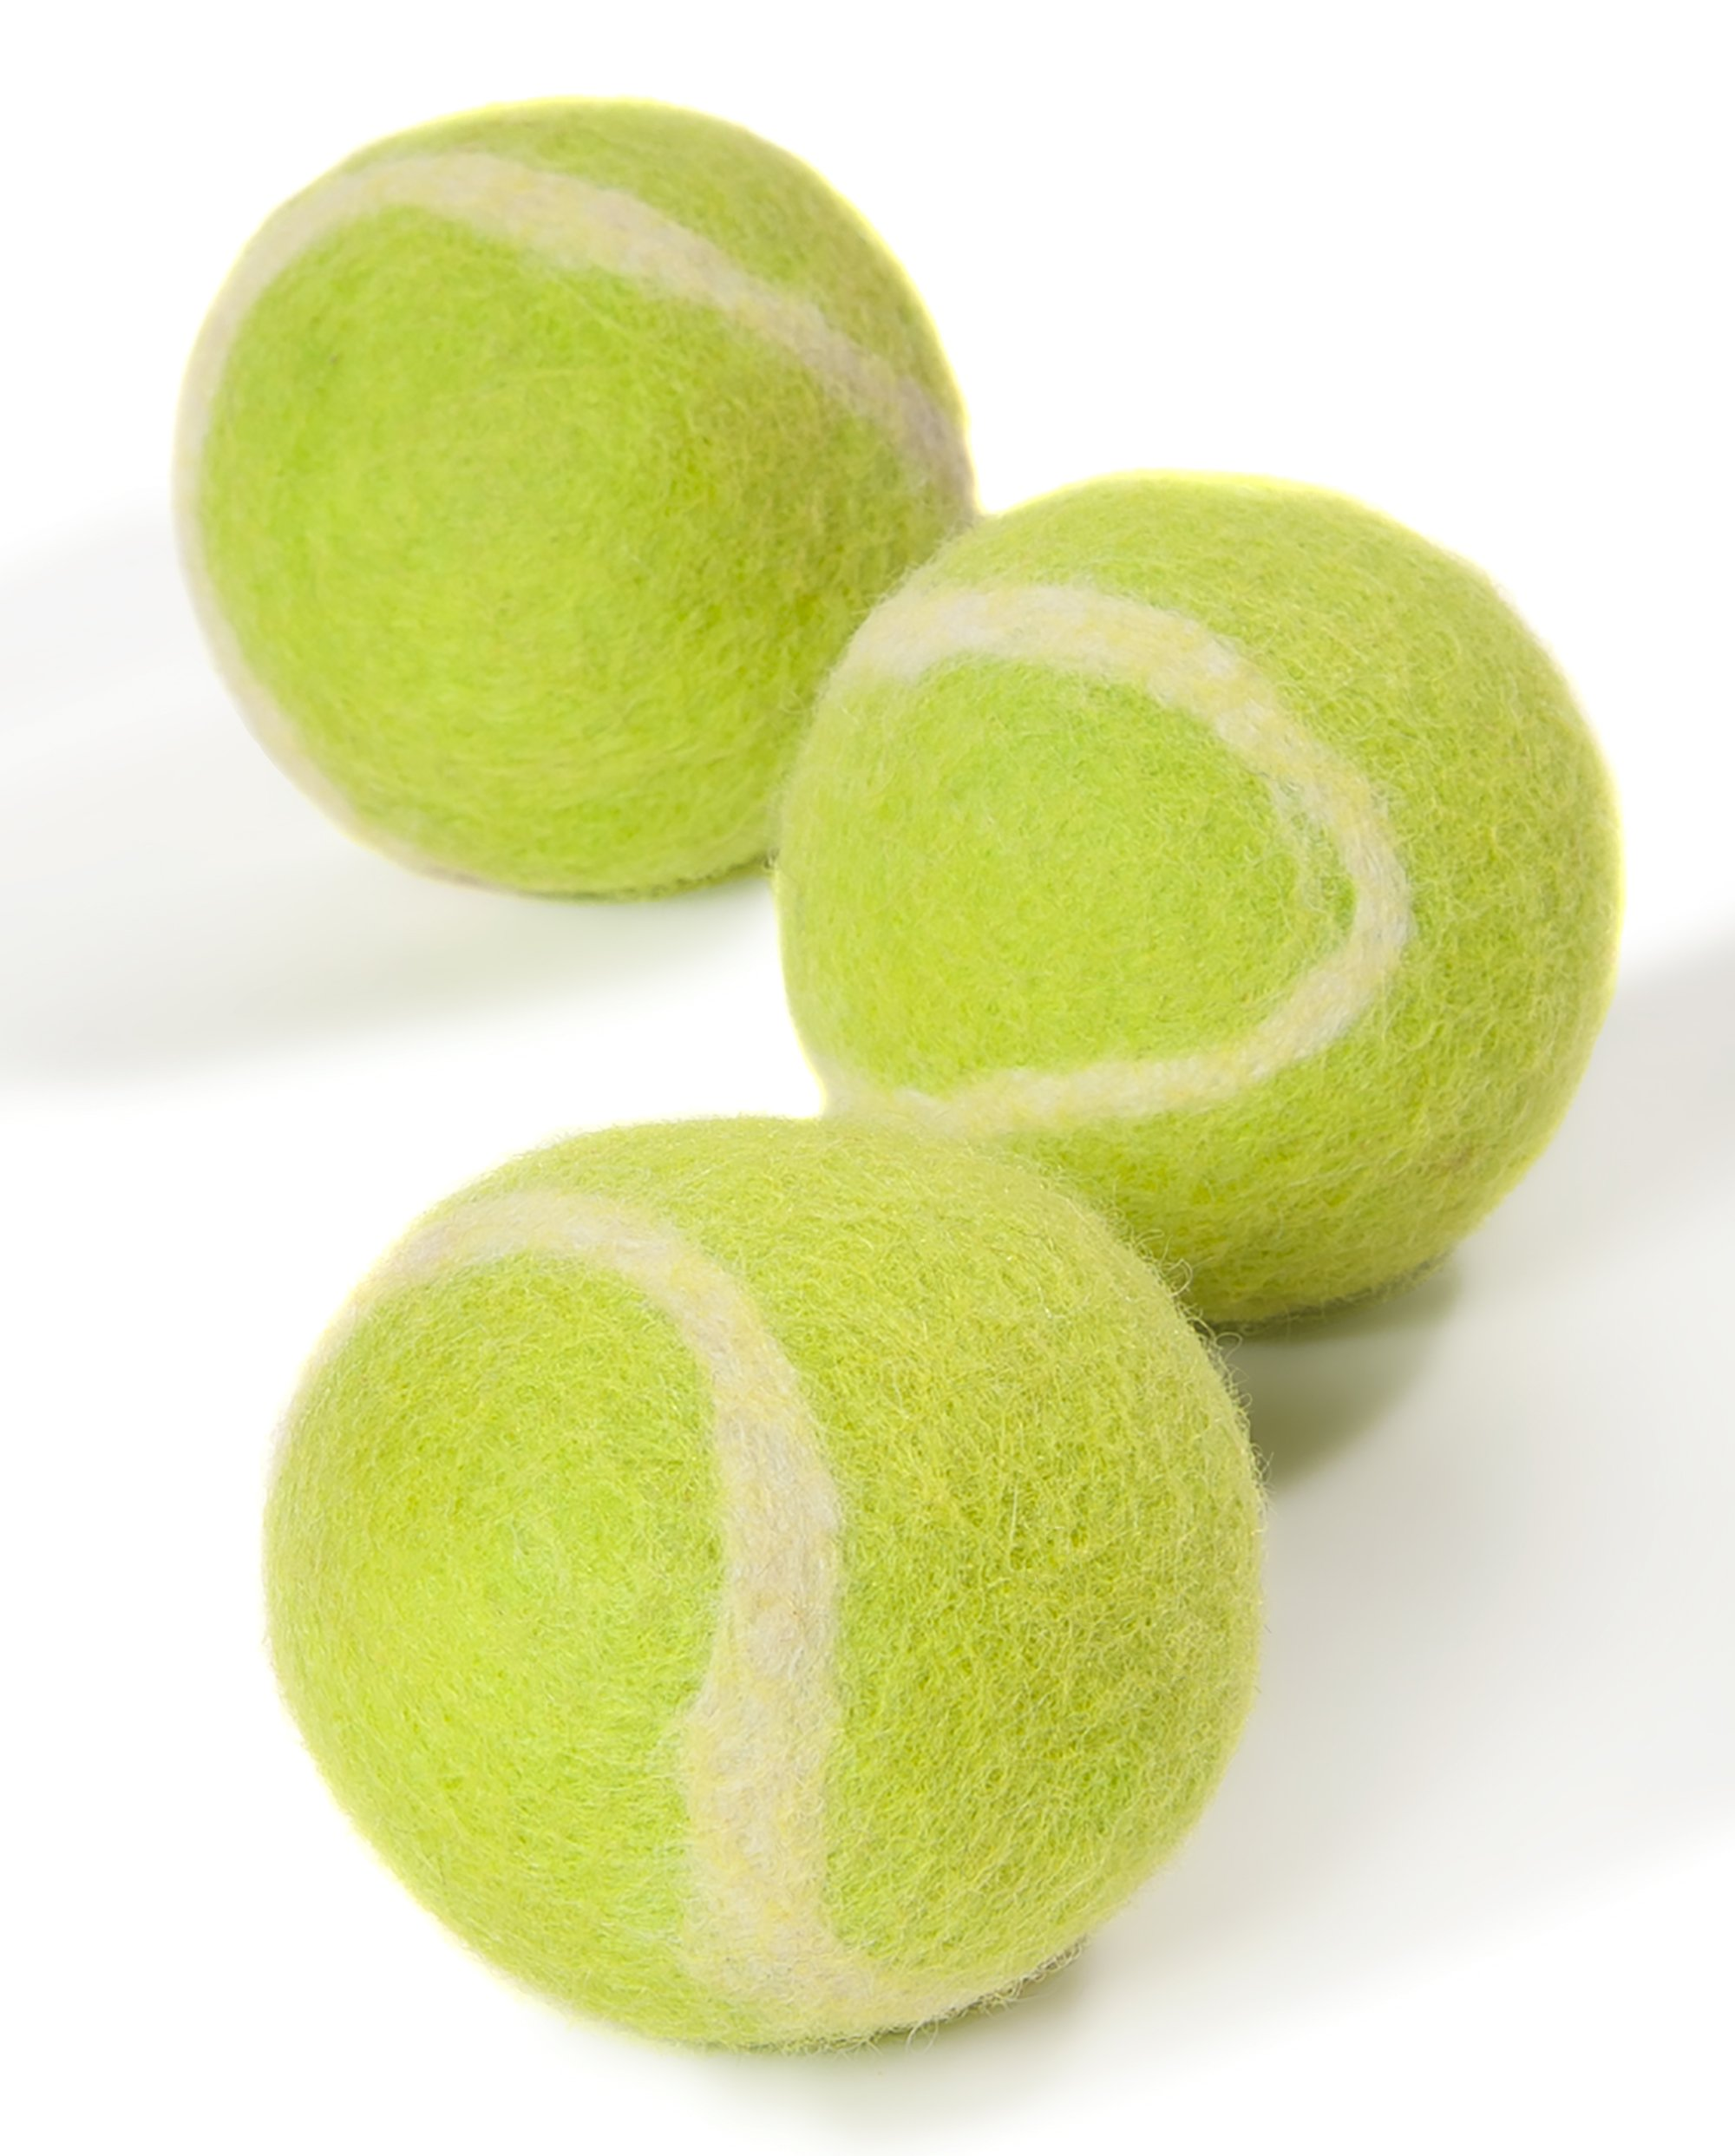 TennisWools - All Natural Tennis Balls For Dogs - 3 Pack - 100% merino wool